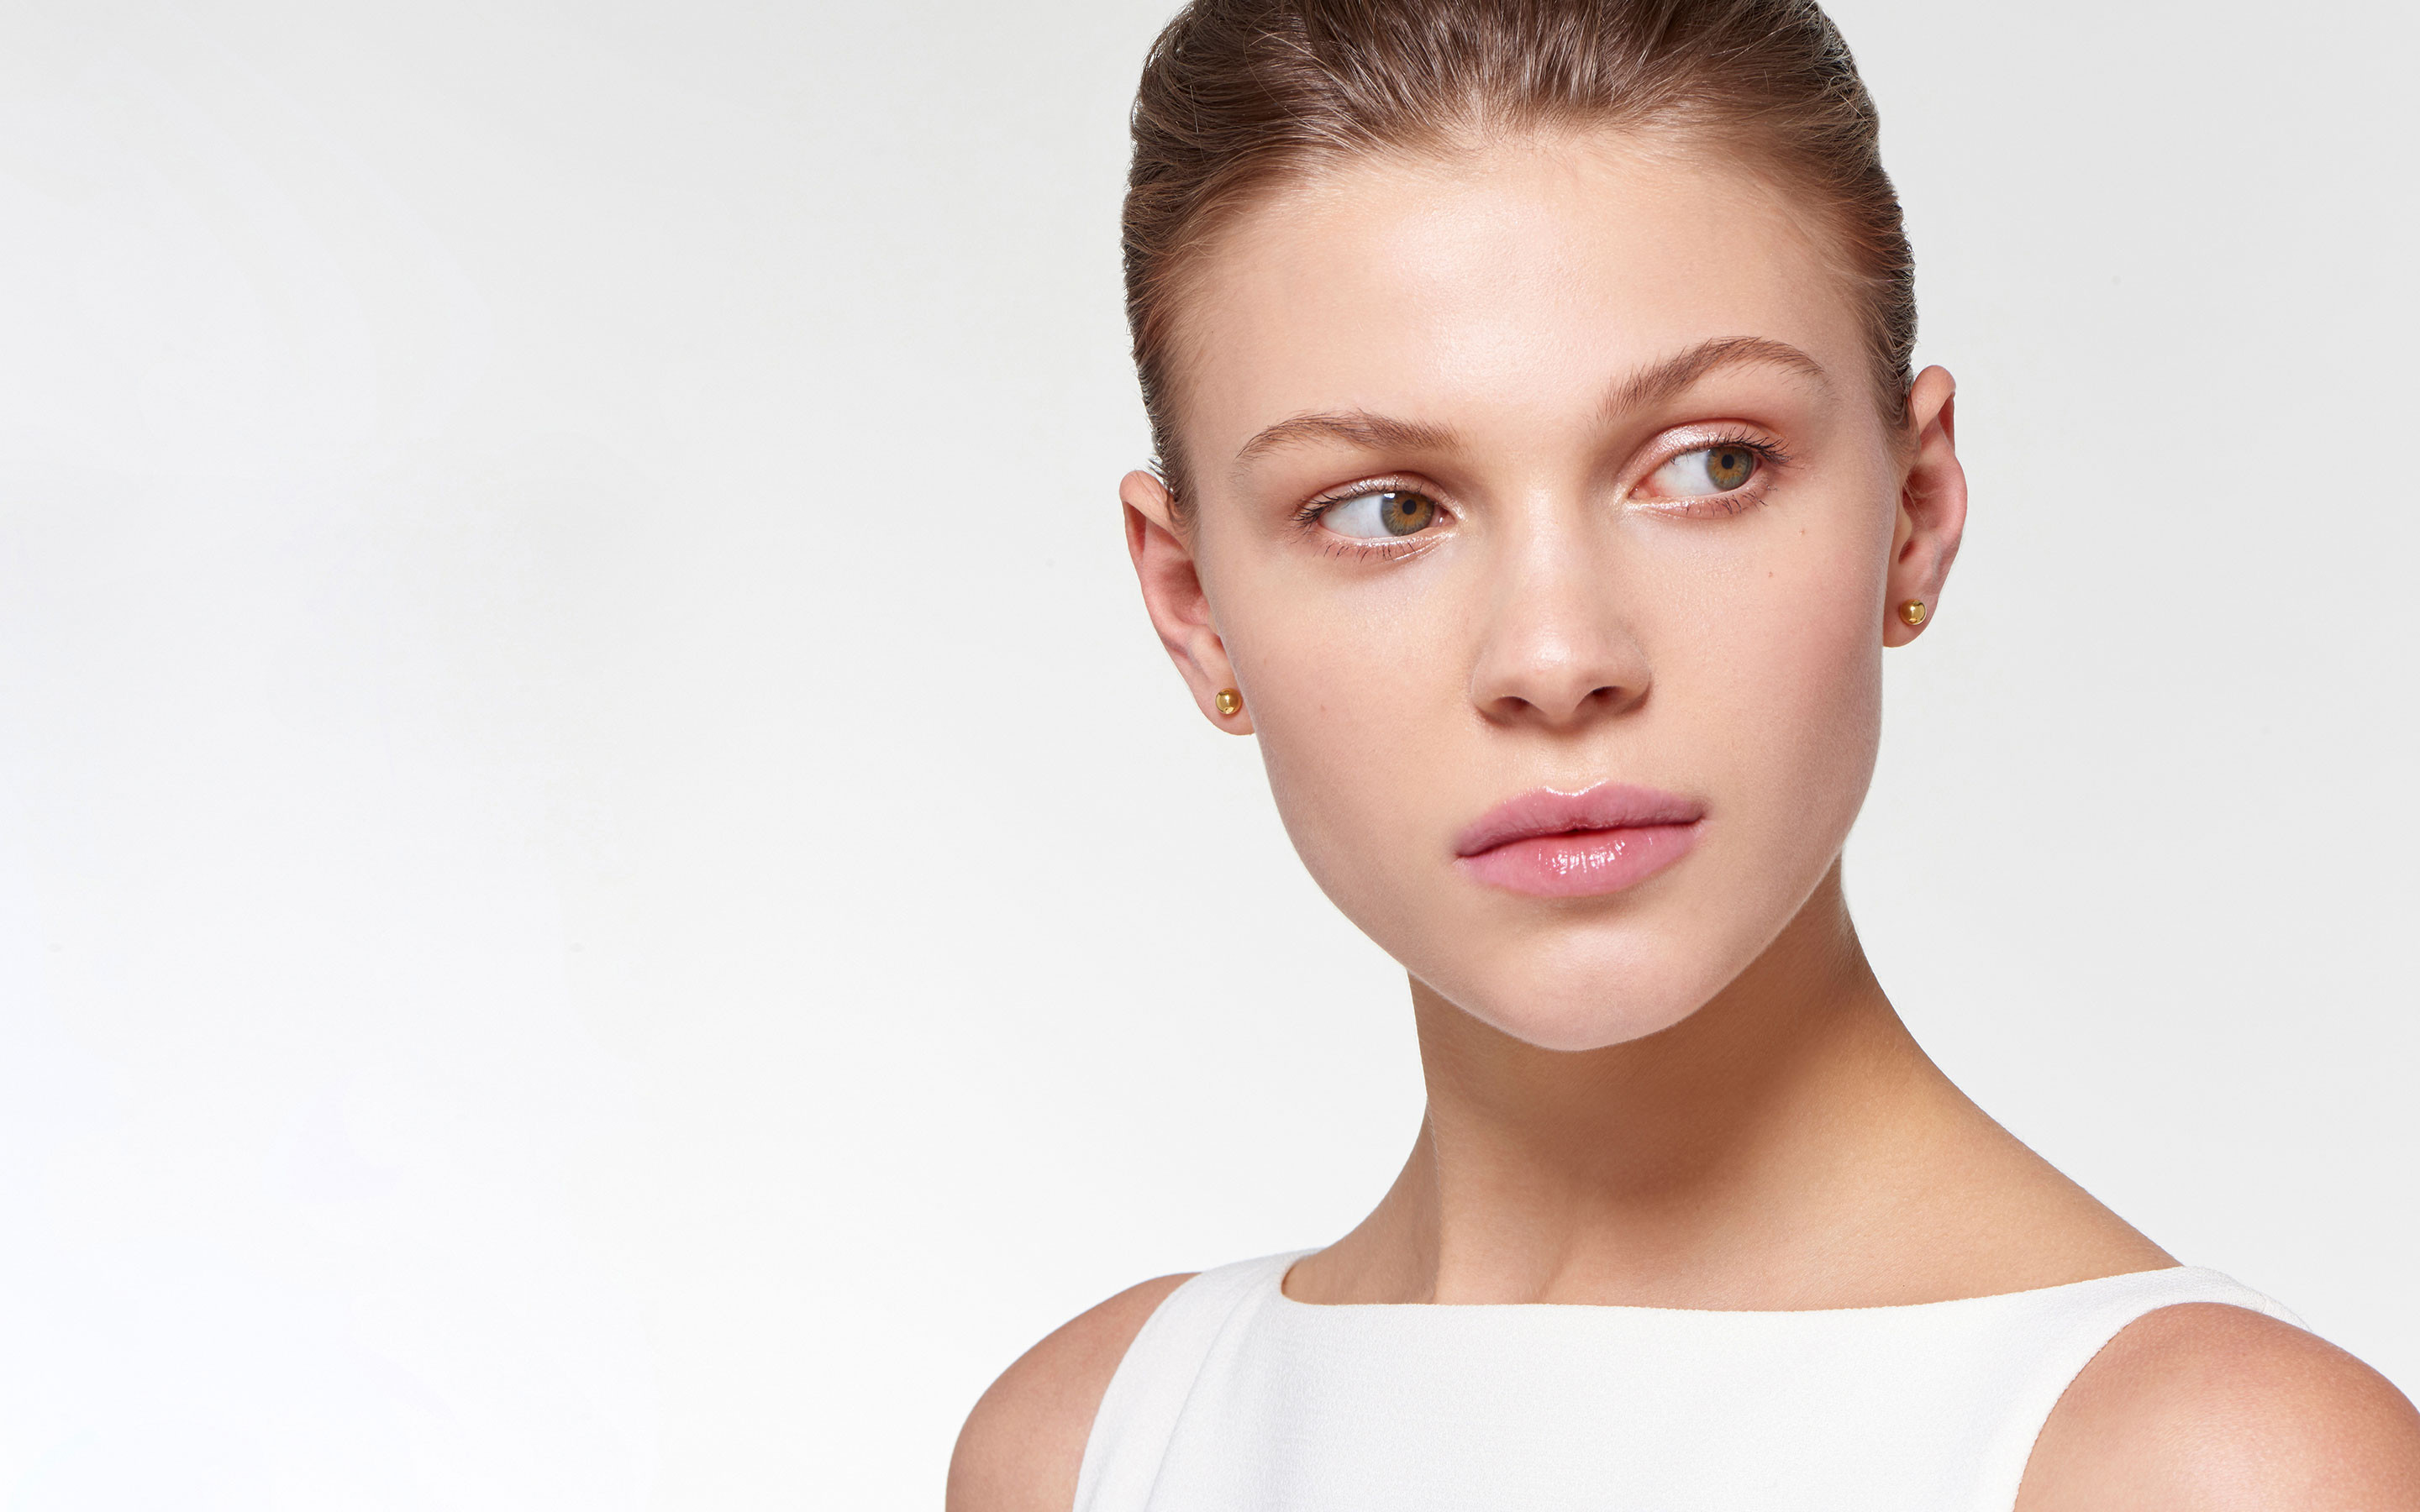 beautiful model with sparkling globe stud earrings of 22 karat polished gold